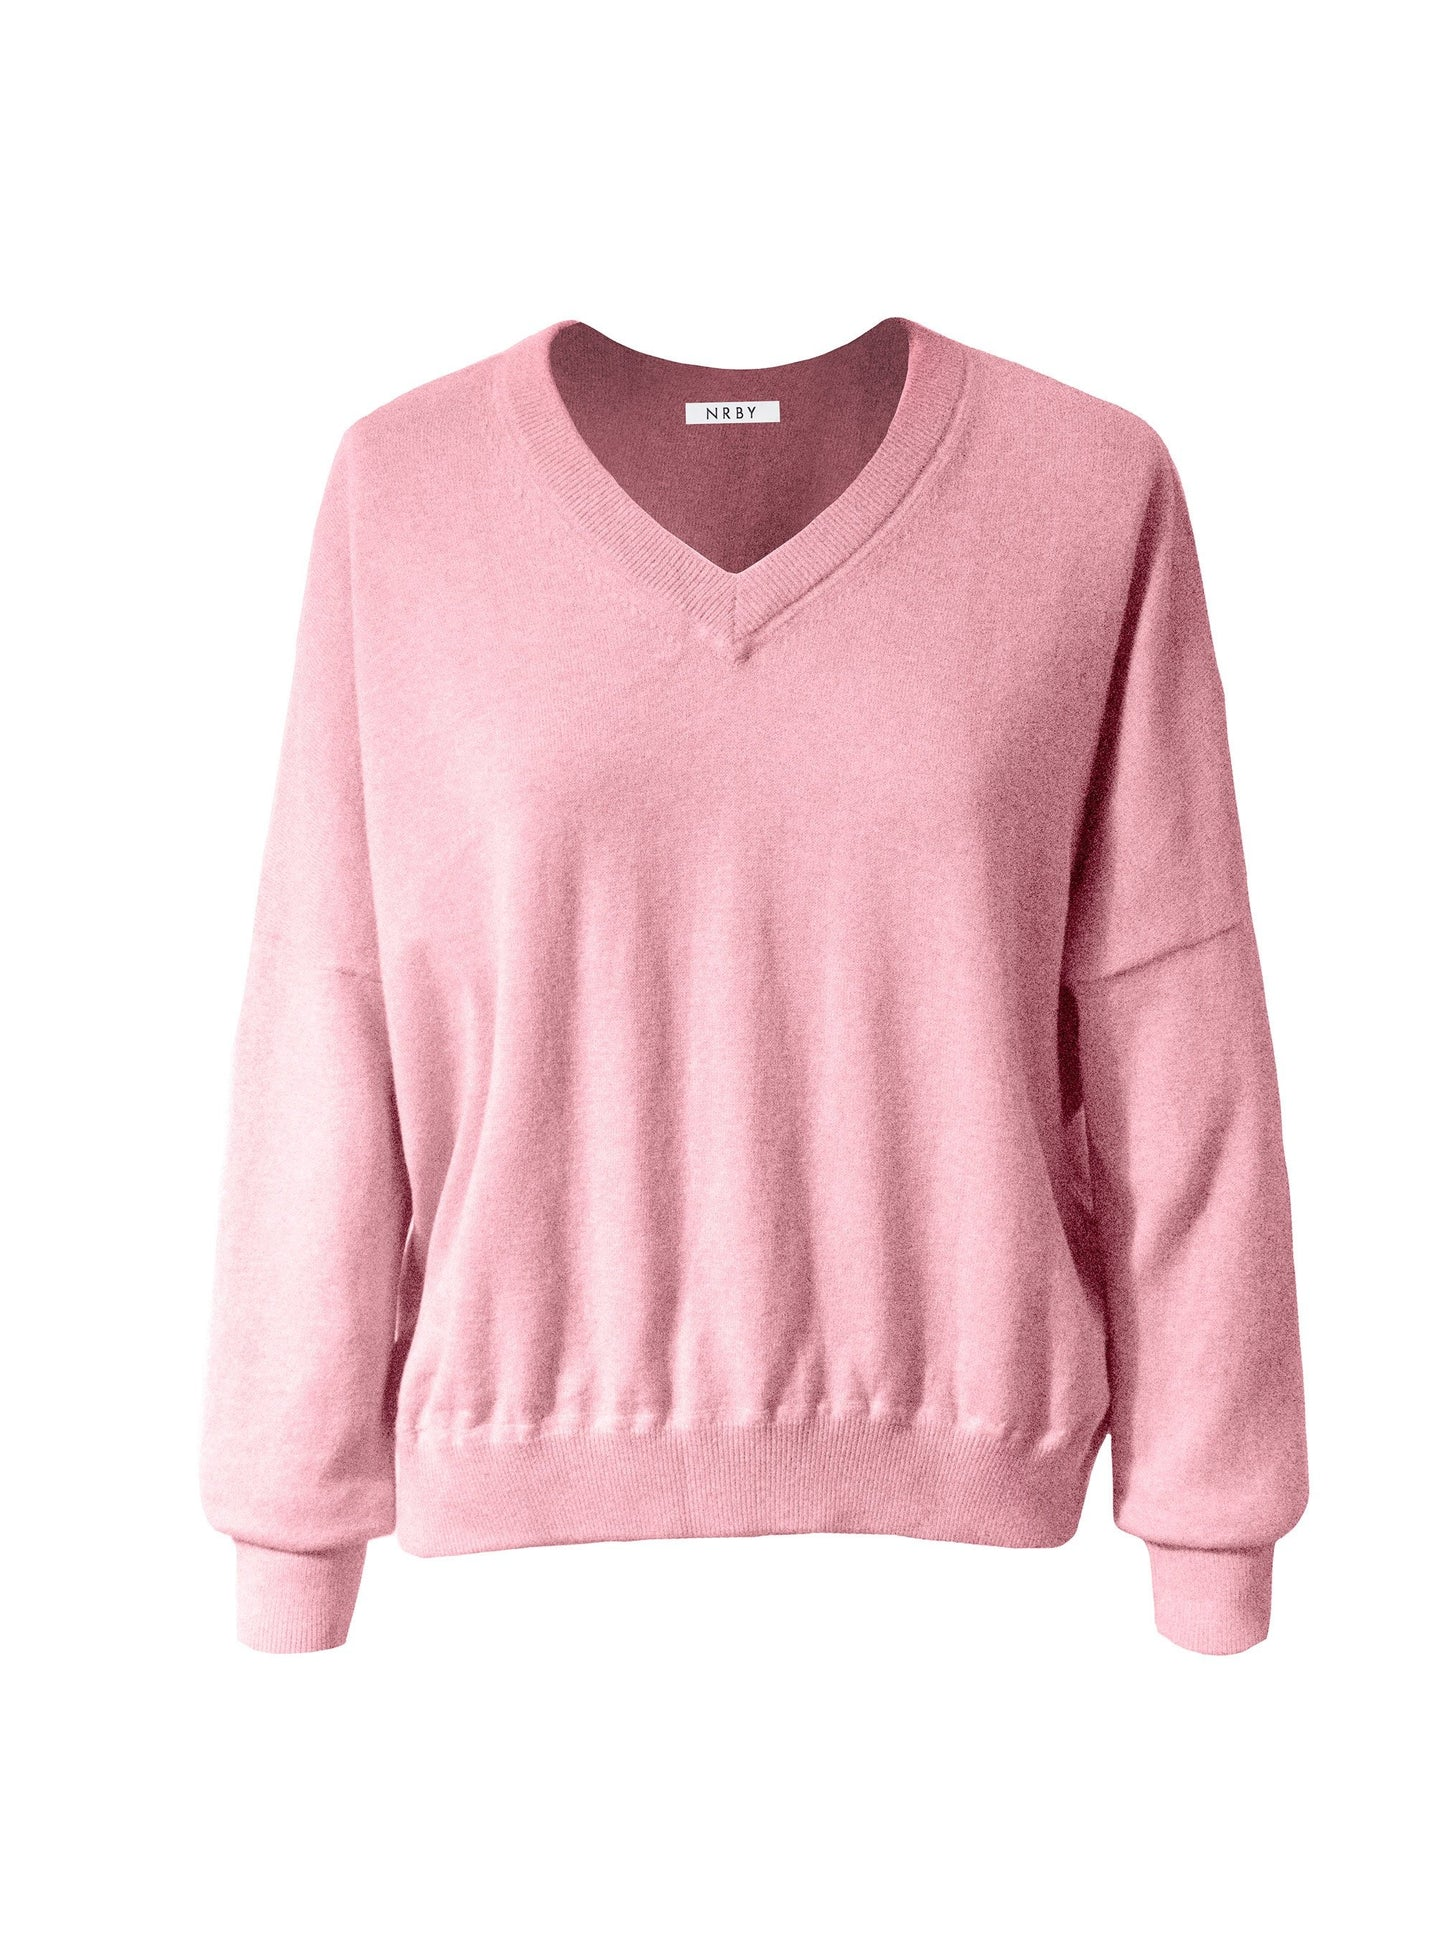 Maddy v neck sweater